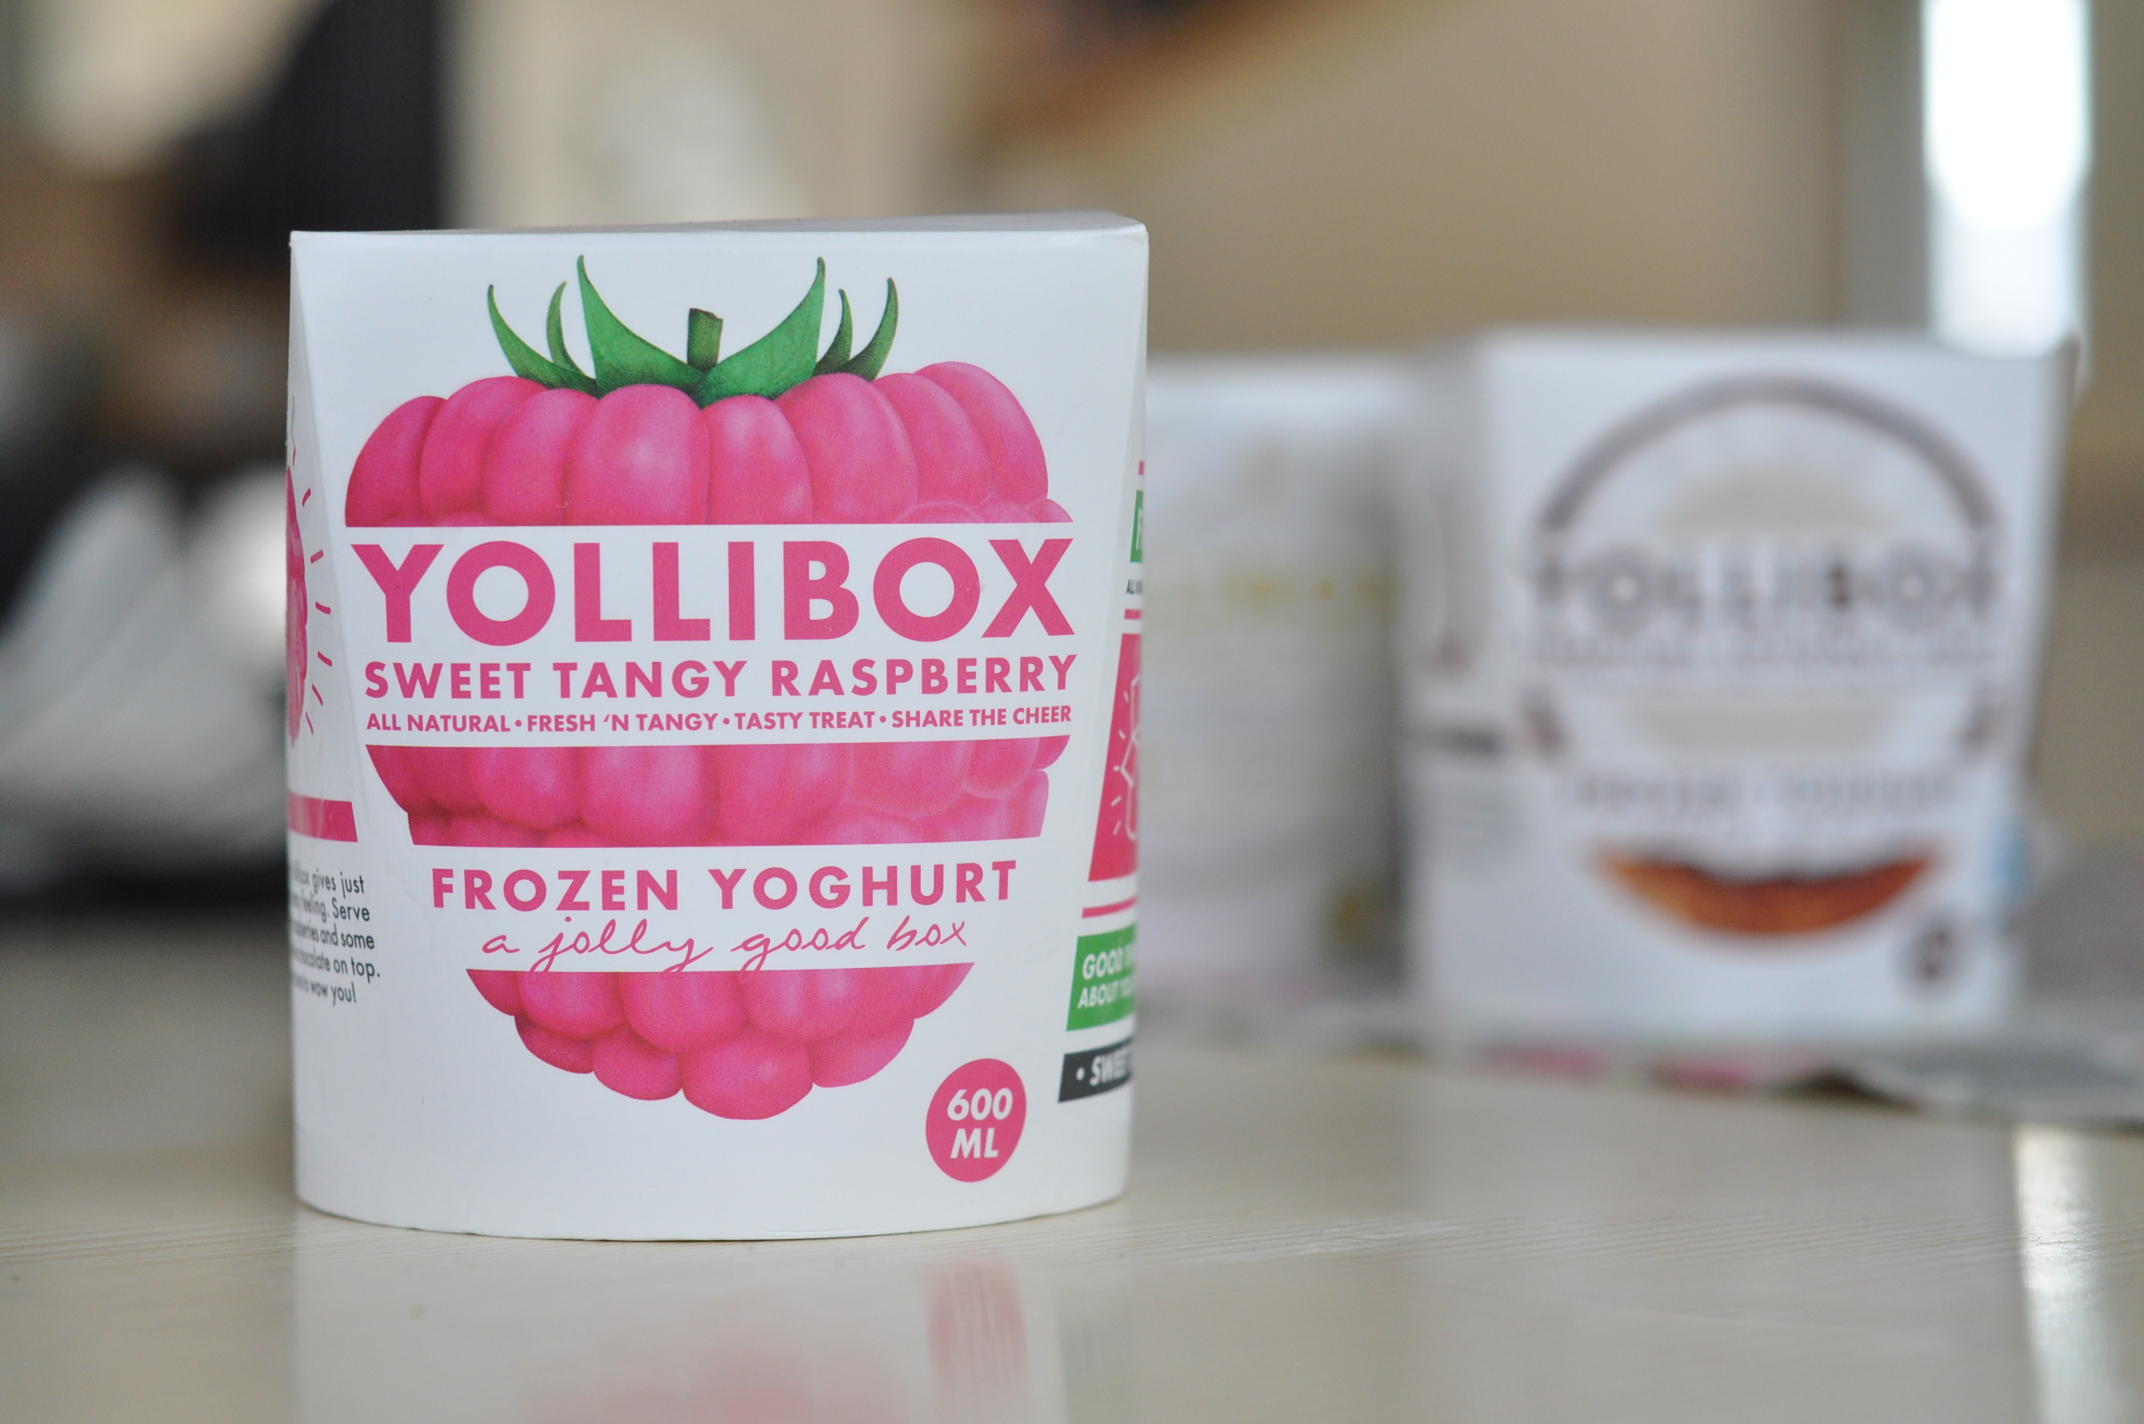 Yollibox Sweet Tangy Raspberry